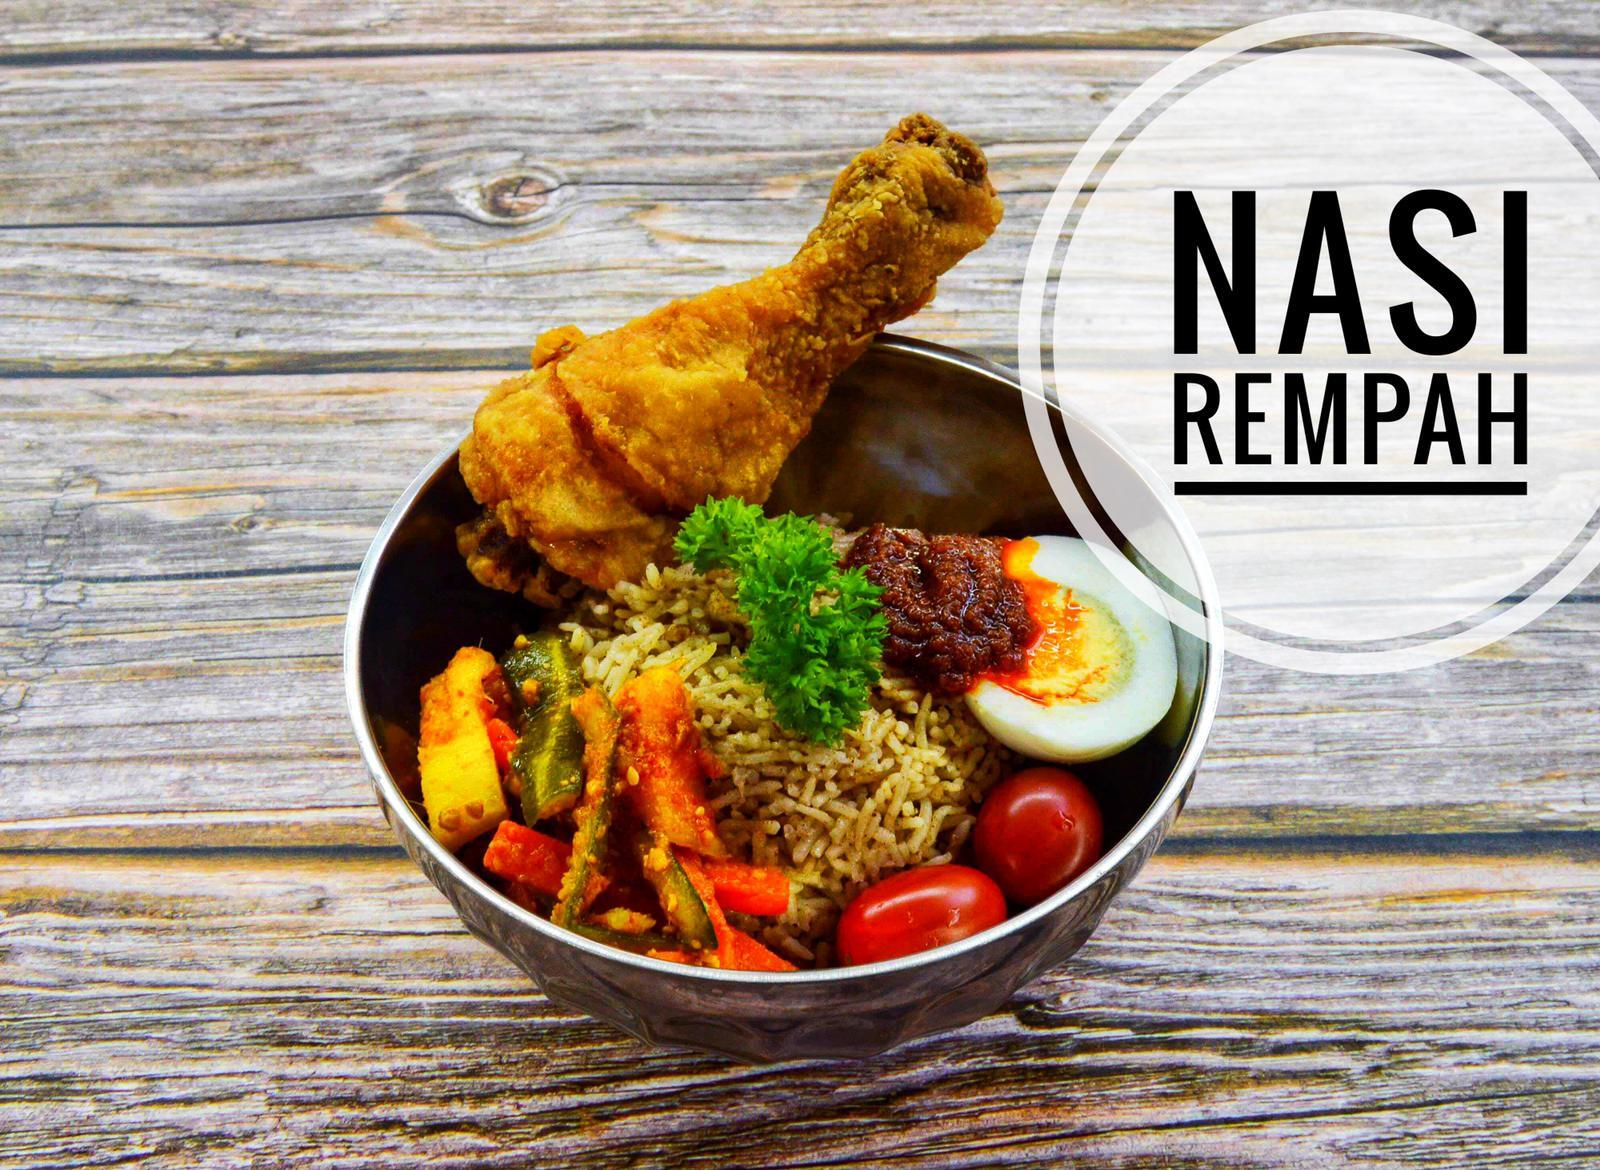 1-for-1 Nasi Rempah [Exclusive Deal]